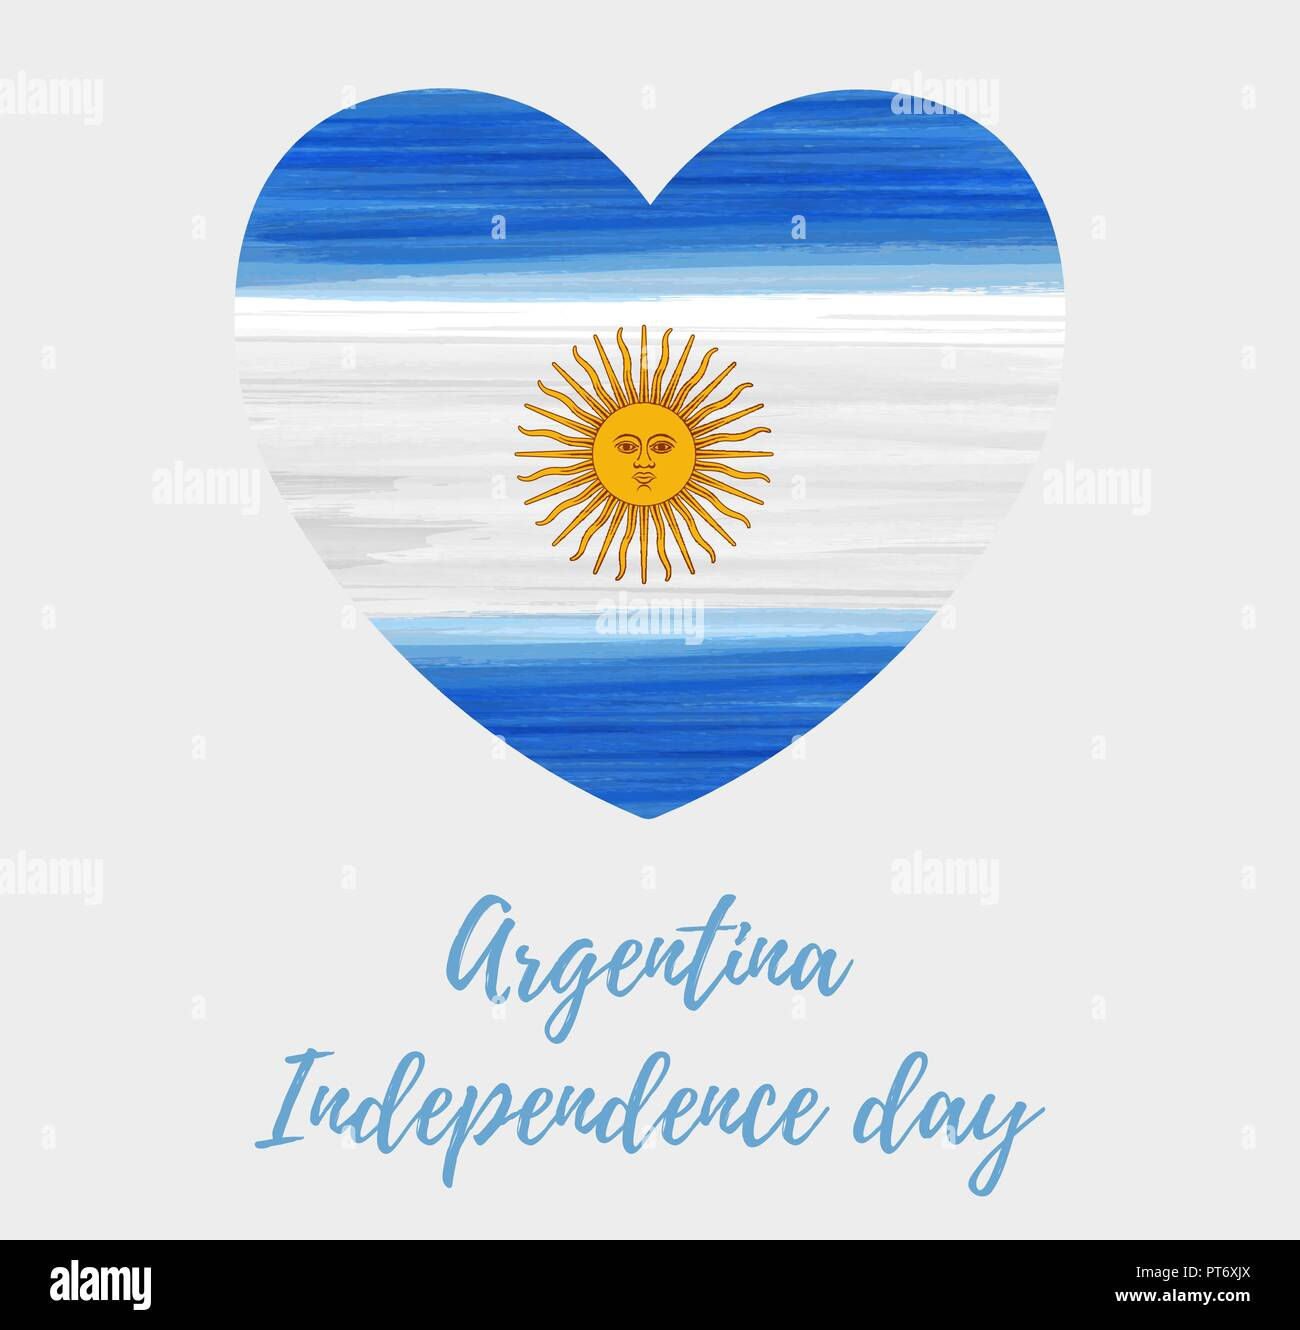 Argentina Abstract Brushed Watercolor Grunge Flag In Heart Shape